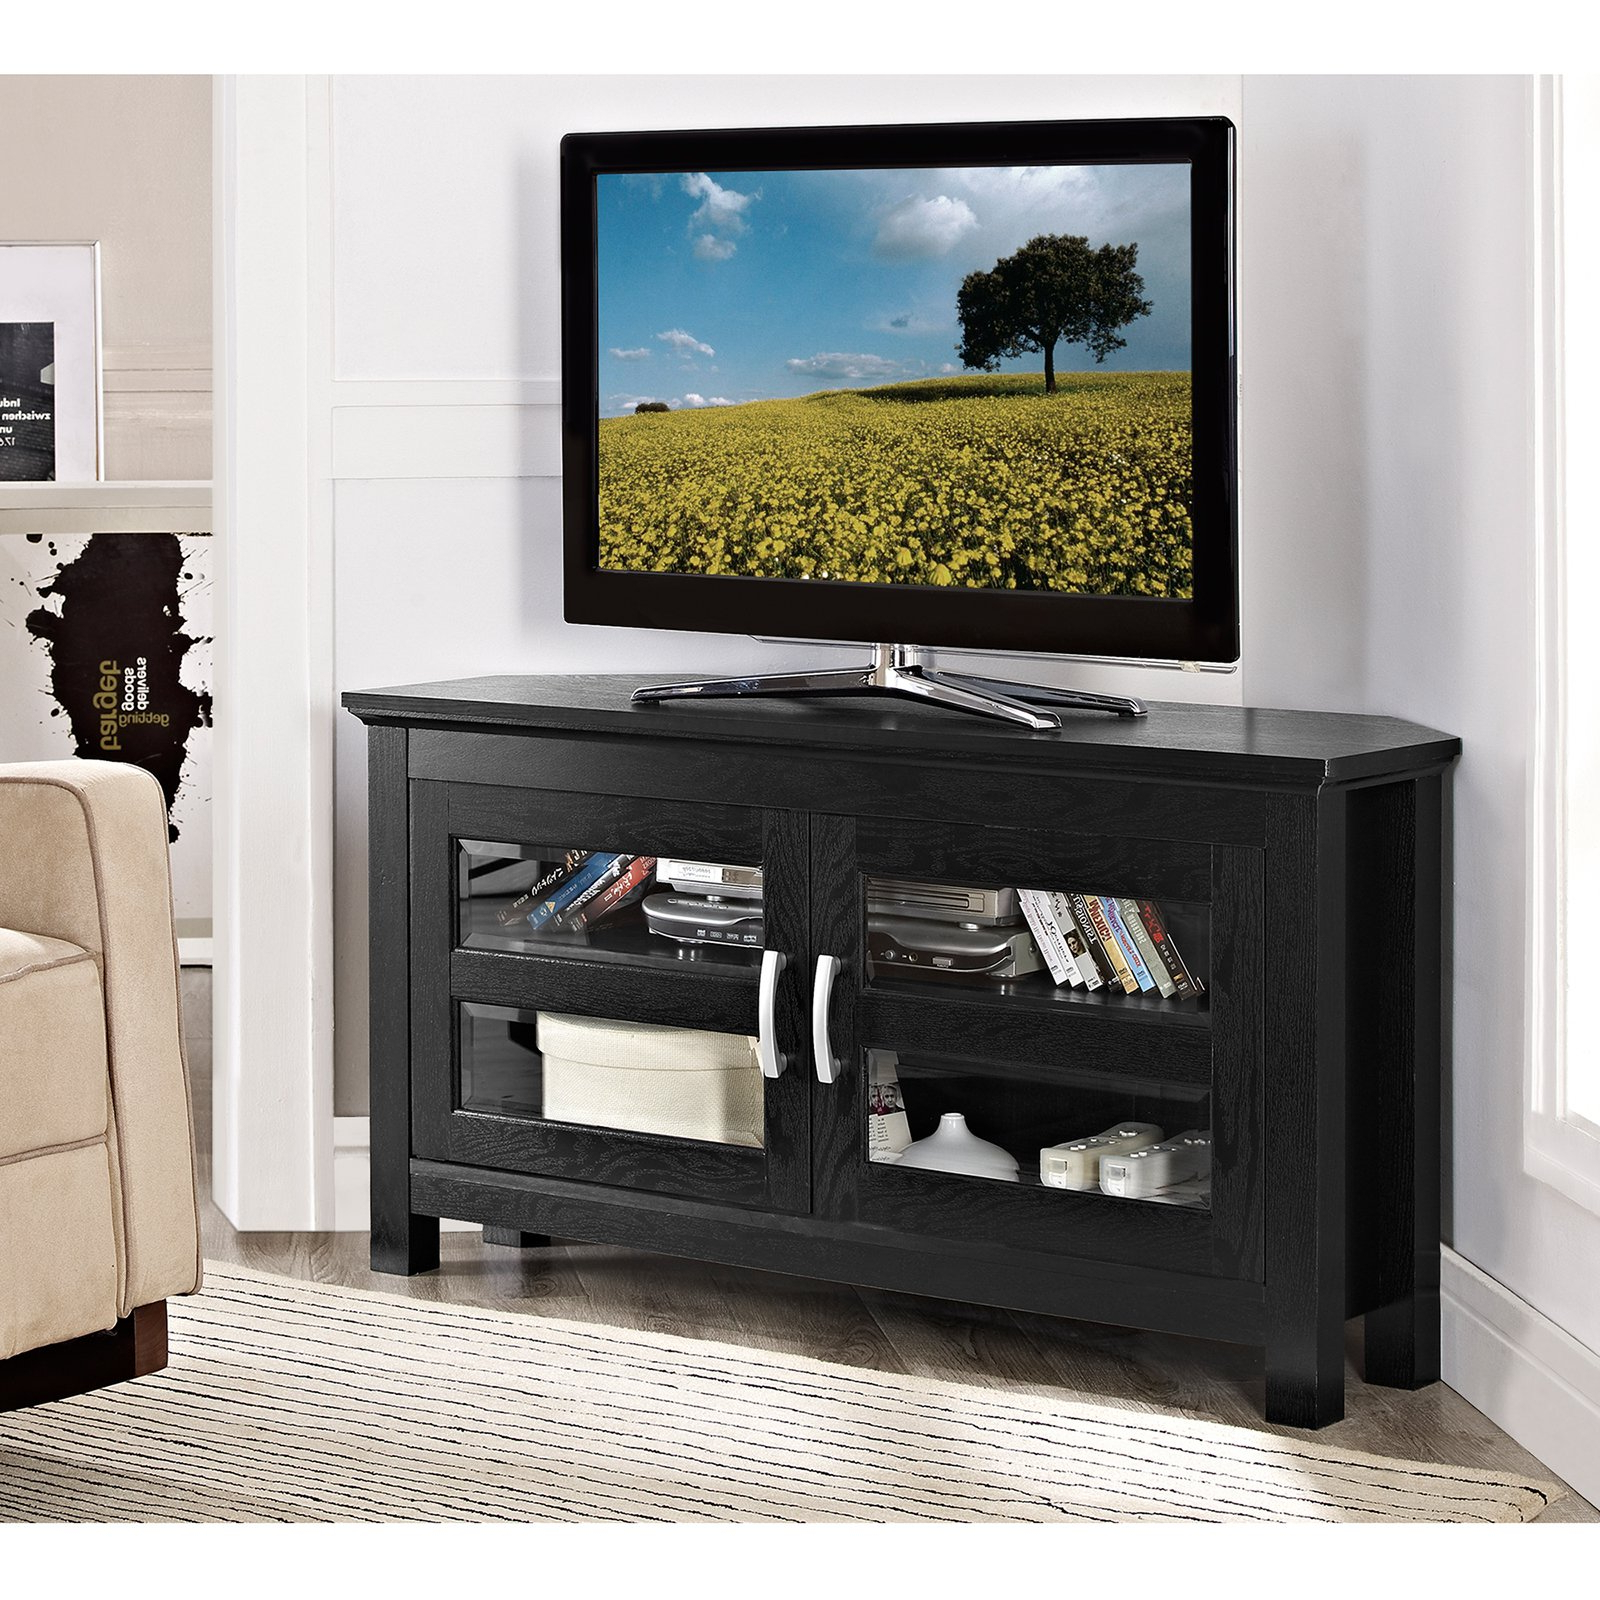 Most Popular Black Corner Tv Stands For Tvs Up To 60 Pertaining To Cheap Tv Stand Corner 60 Inch Flat Screen Wood 55 With Mount For (View 19 of 20)